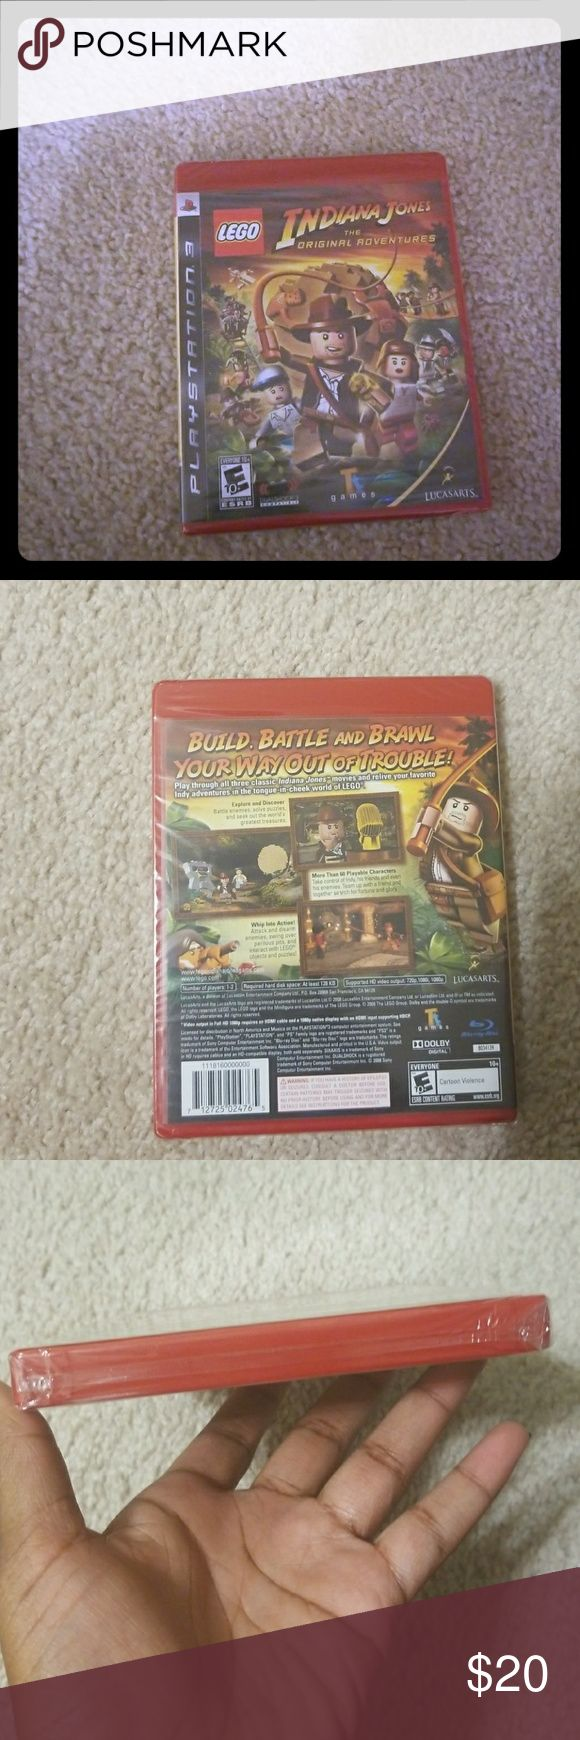 Ps3  lego game Indiana Jones  the original adventures (brand new never opened before) PlayStation Other